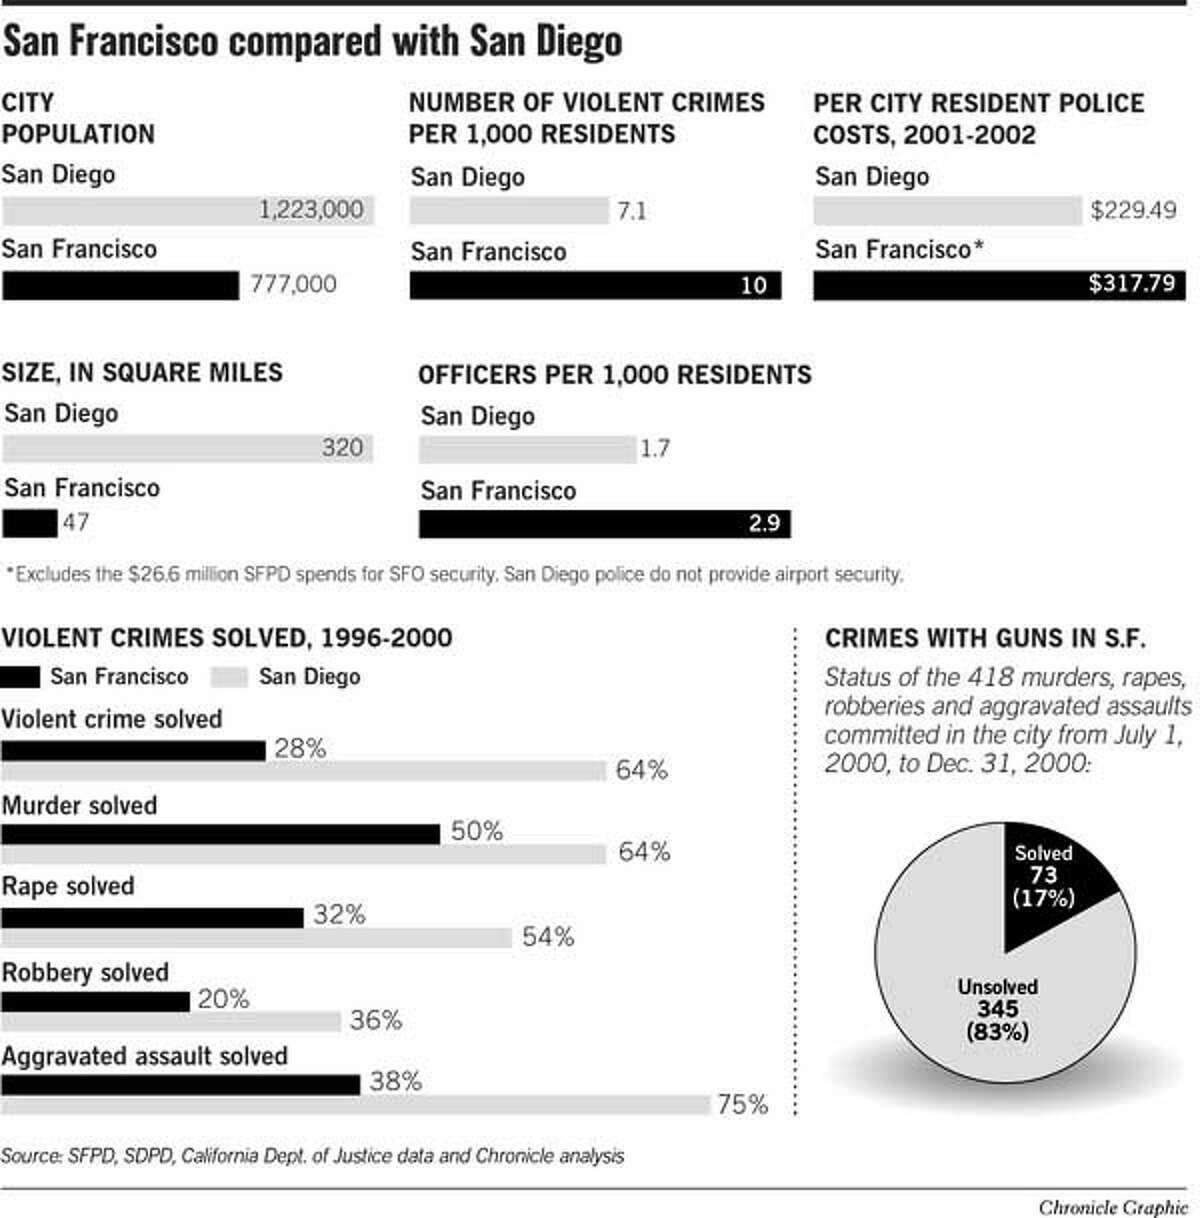 San Francisco Compared To San Diego. Chronicle Graphic